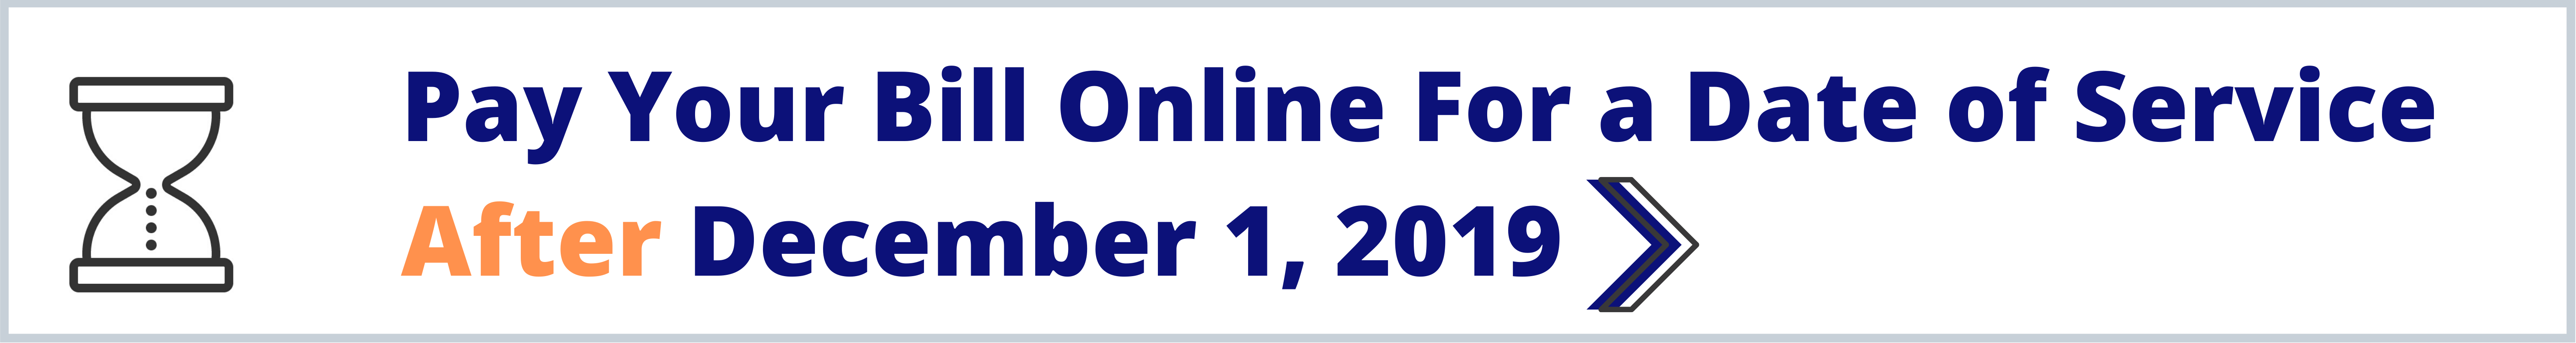 Pay Your Bill Online For a Date of Service On or After December 1, 2019